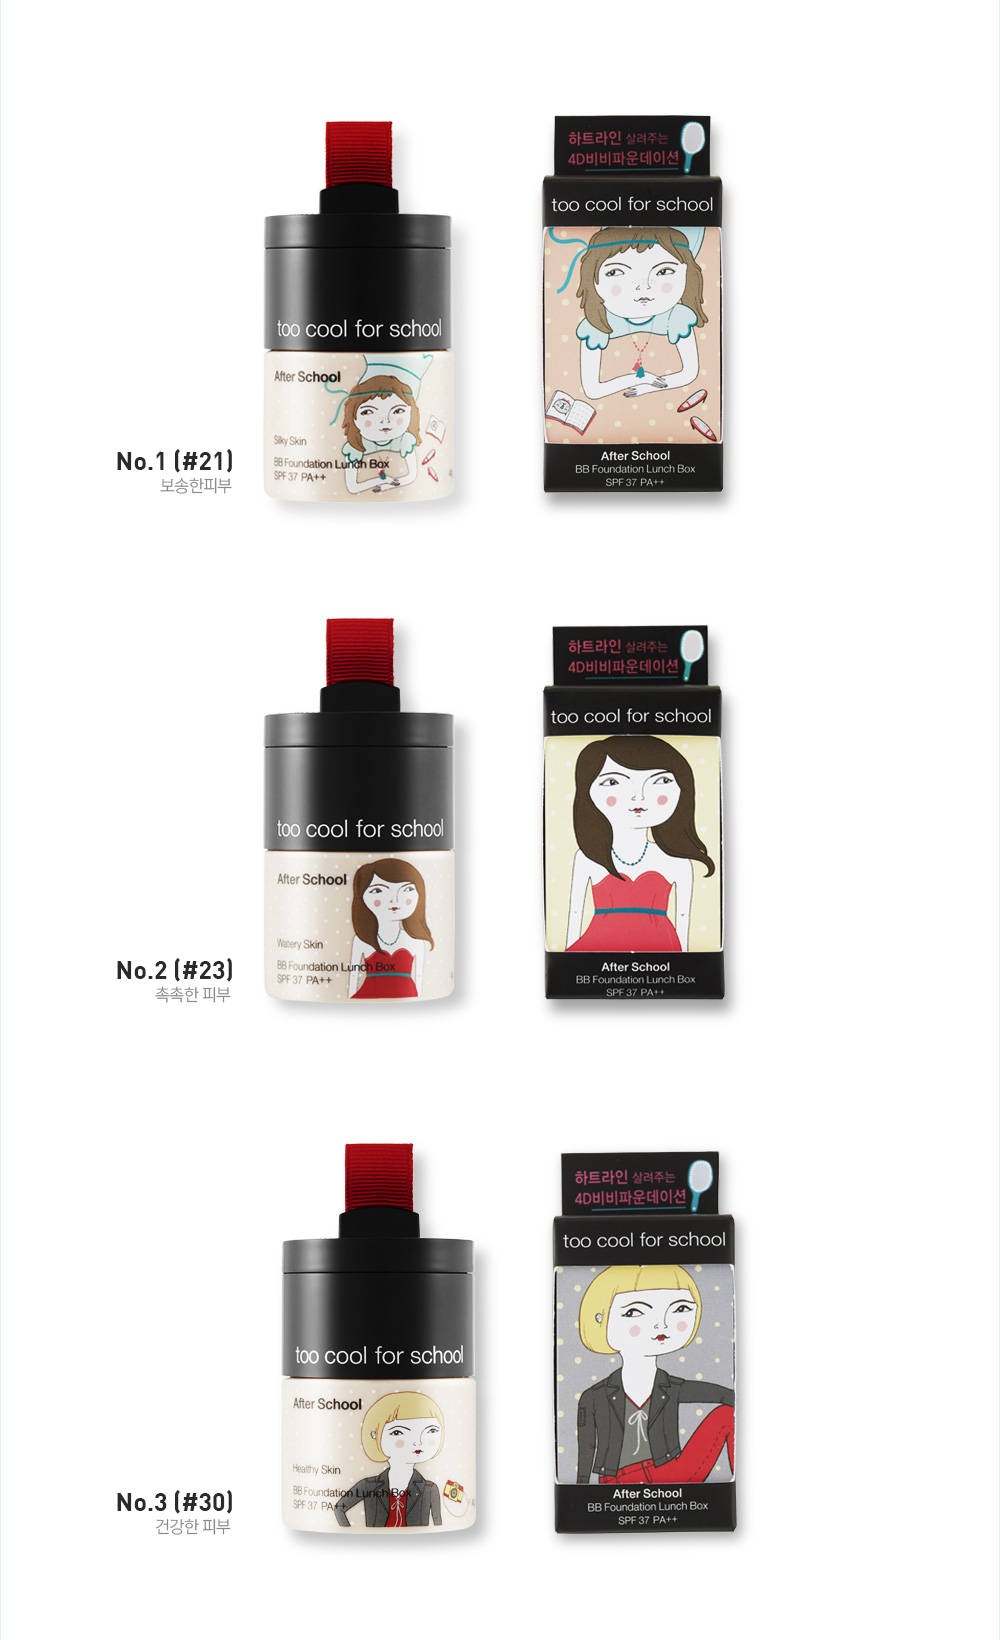 Too cool for school artify after school bb foundation for Bb shop